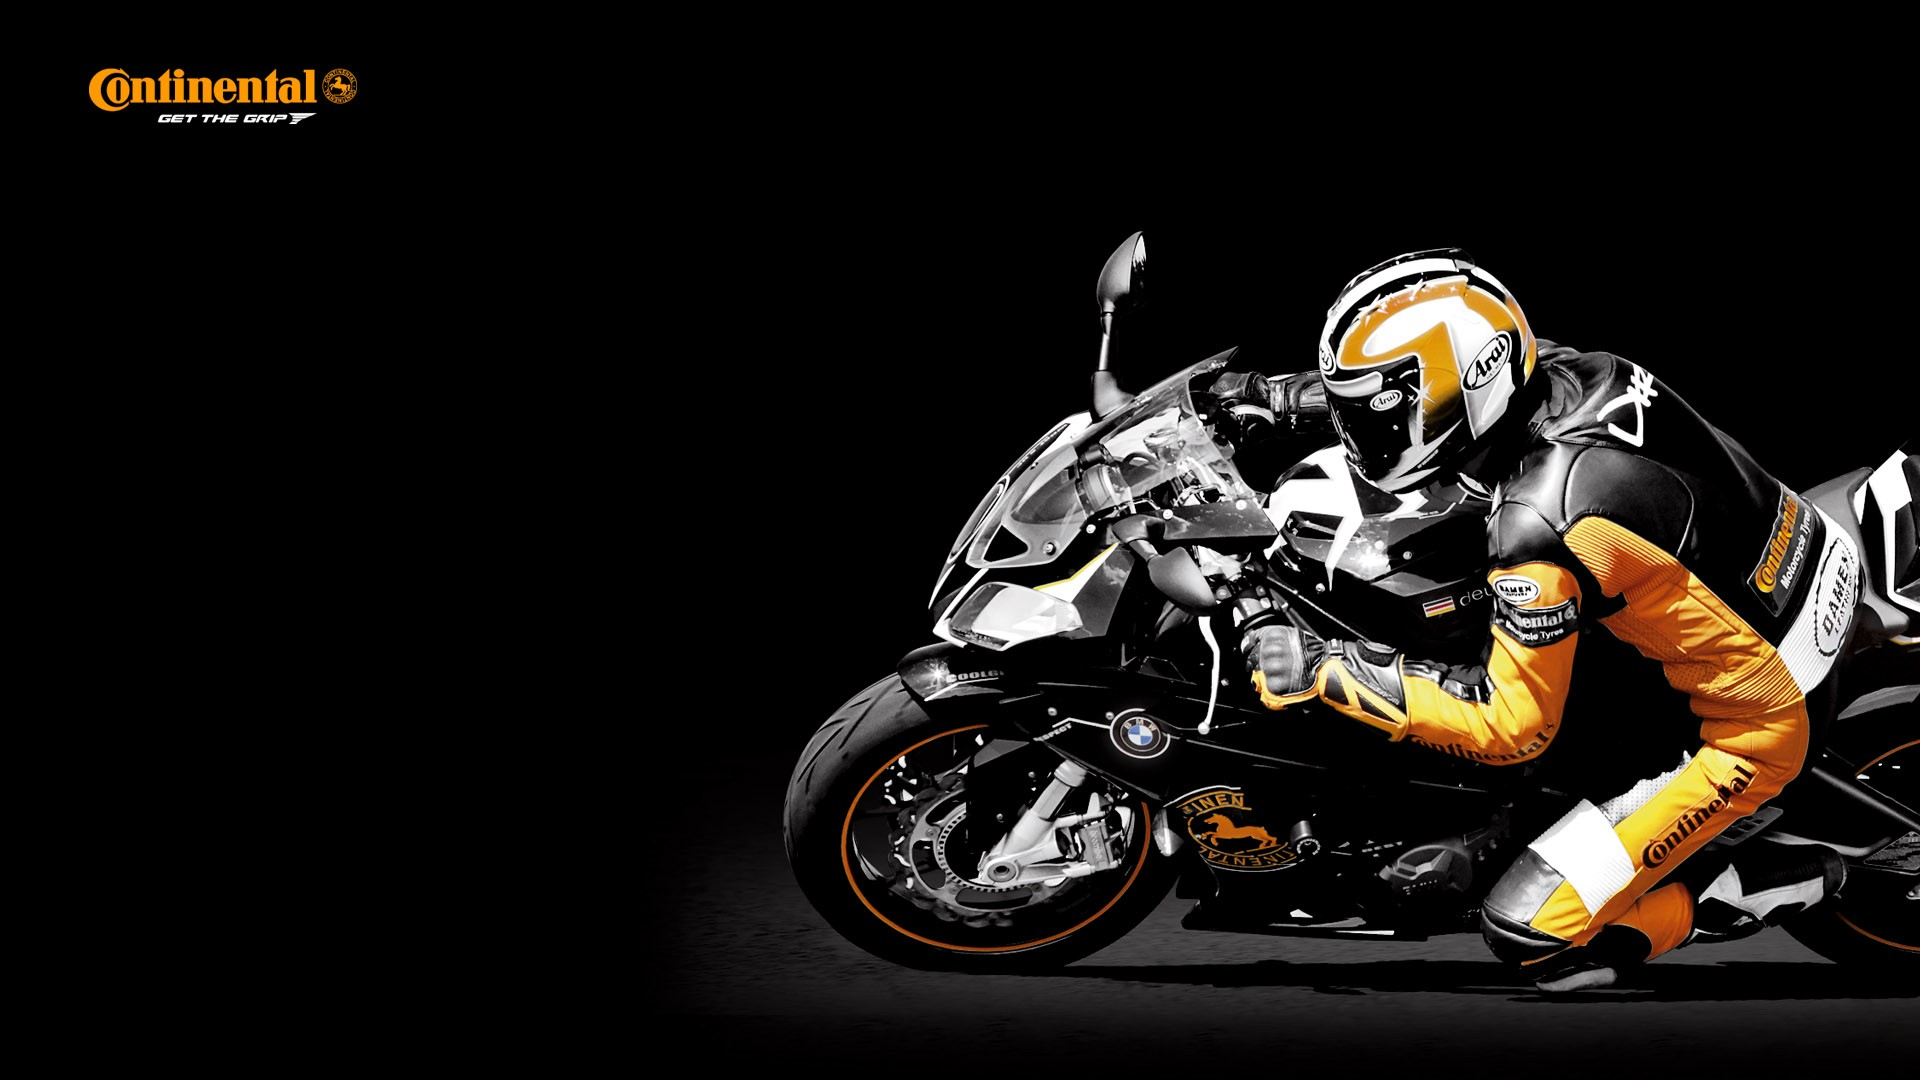 Motorbike Wallpaper HD  WallpaperSafari